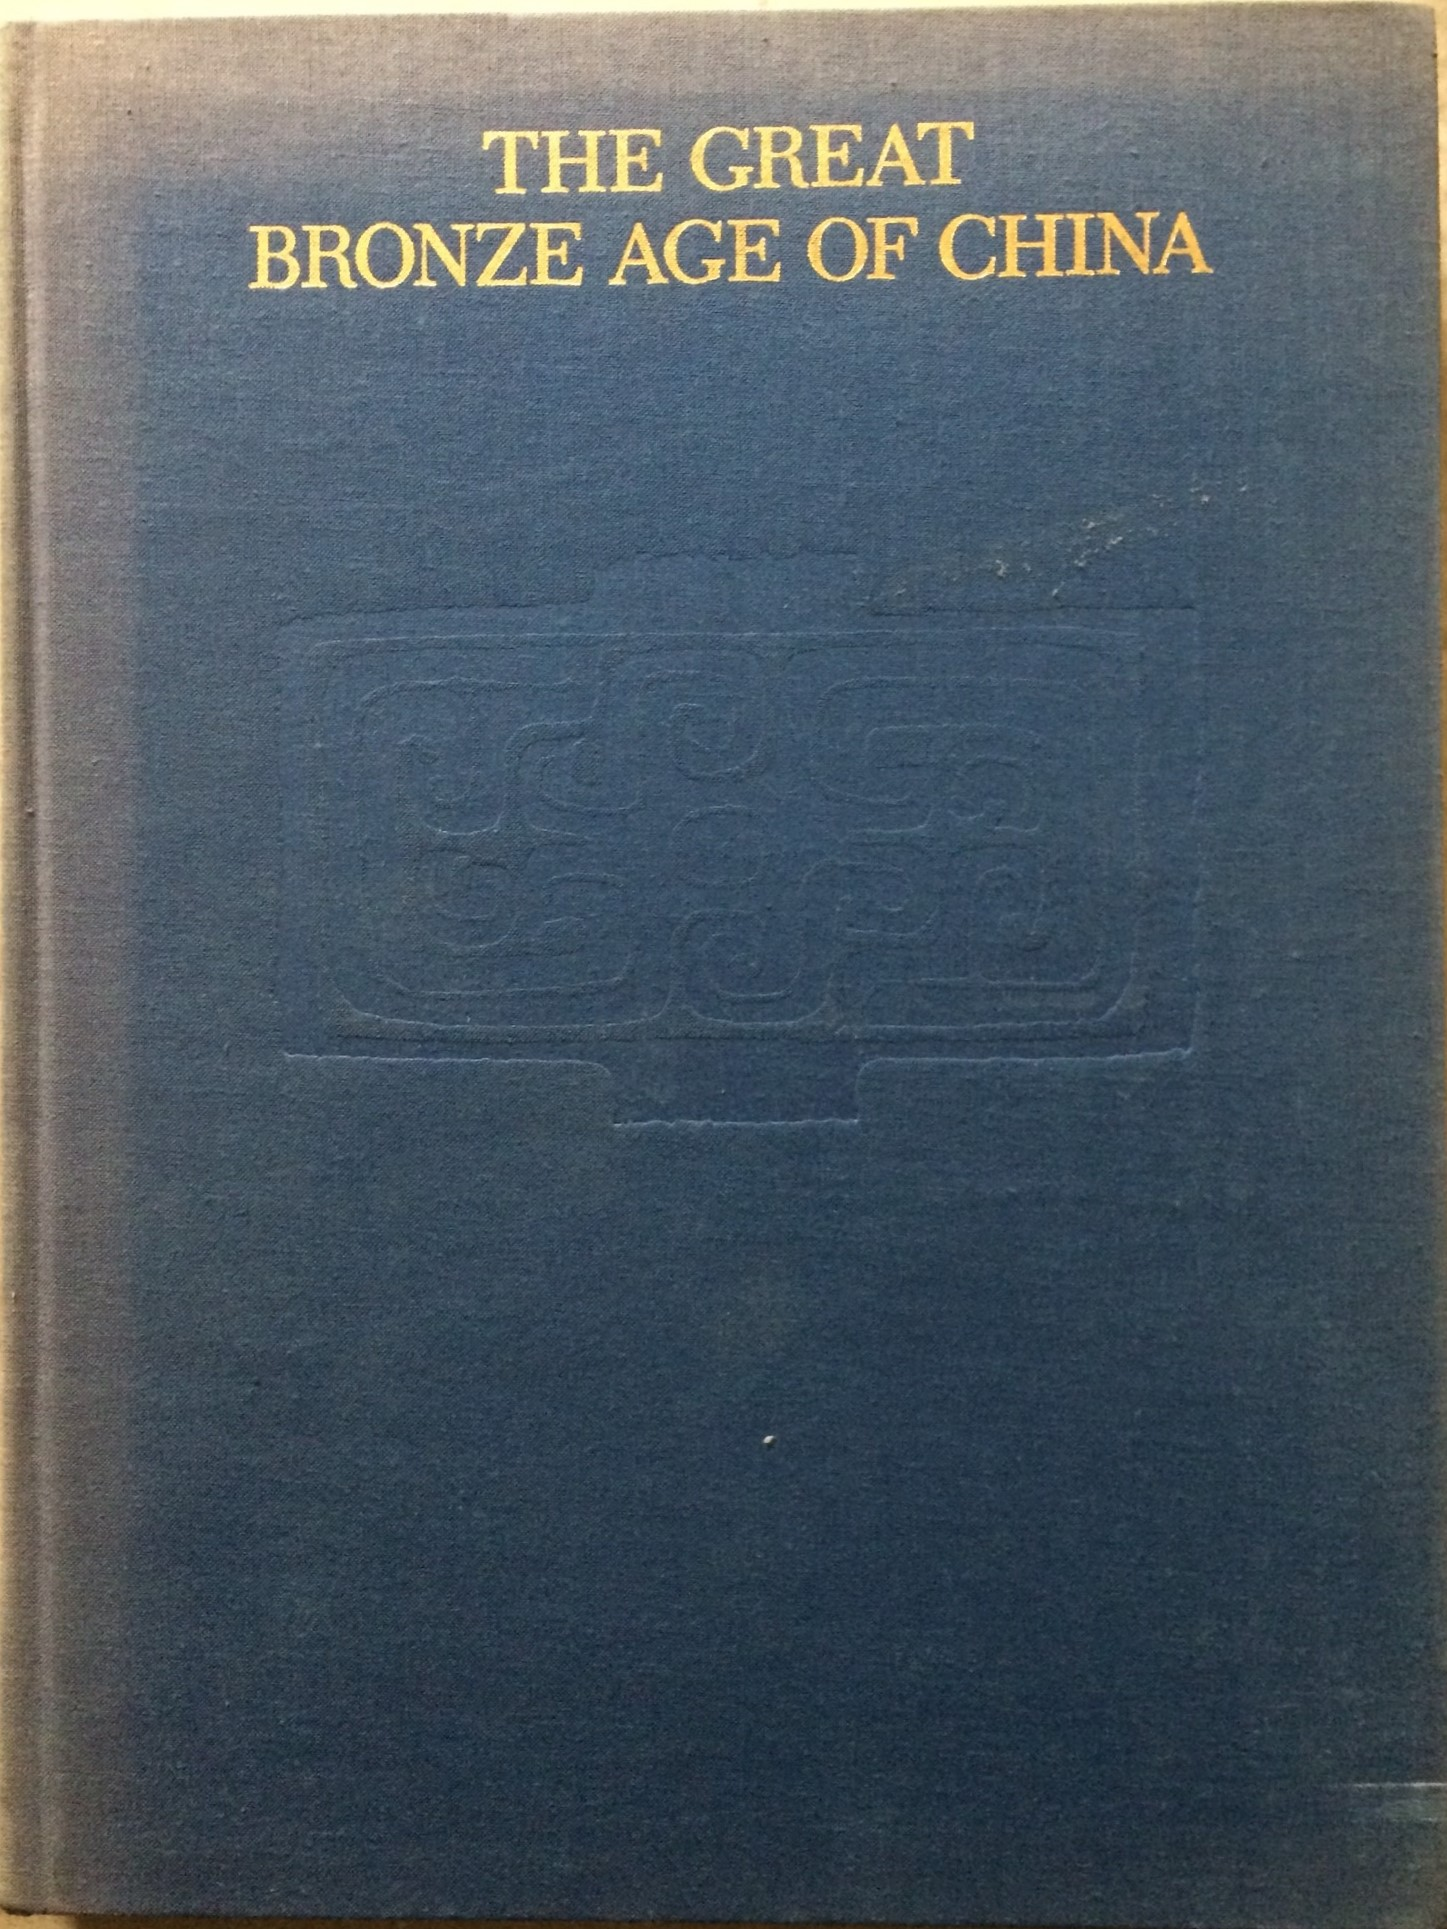 Image for The Great Bronze Age of China: An Exhibition from the Peoples Republic of China